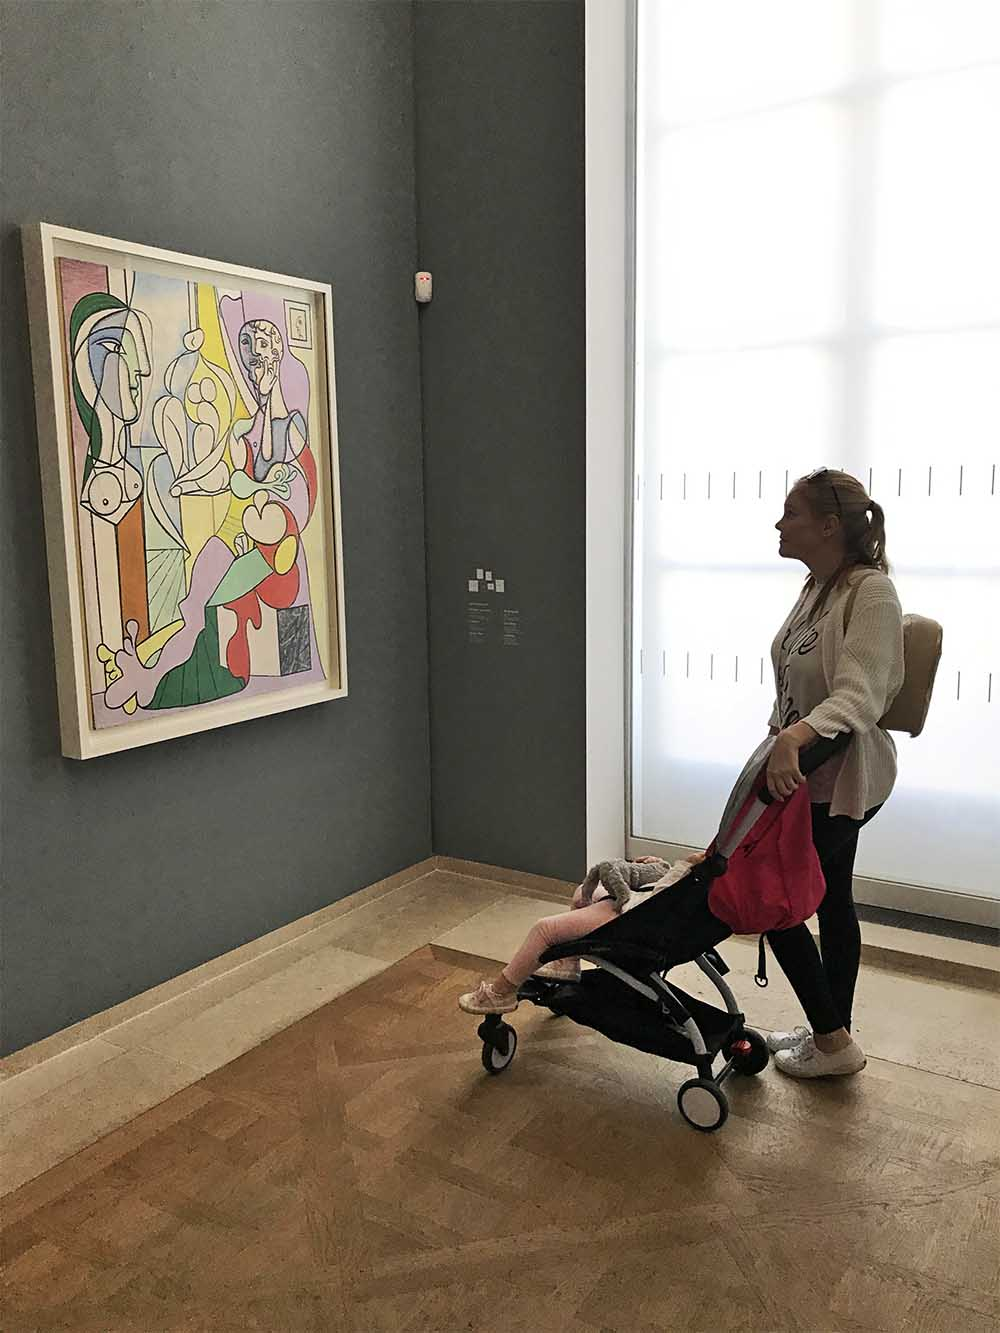 Inside the Musée Picasso. I was pleasantly surprised that the stroller was allowed in!